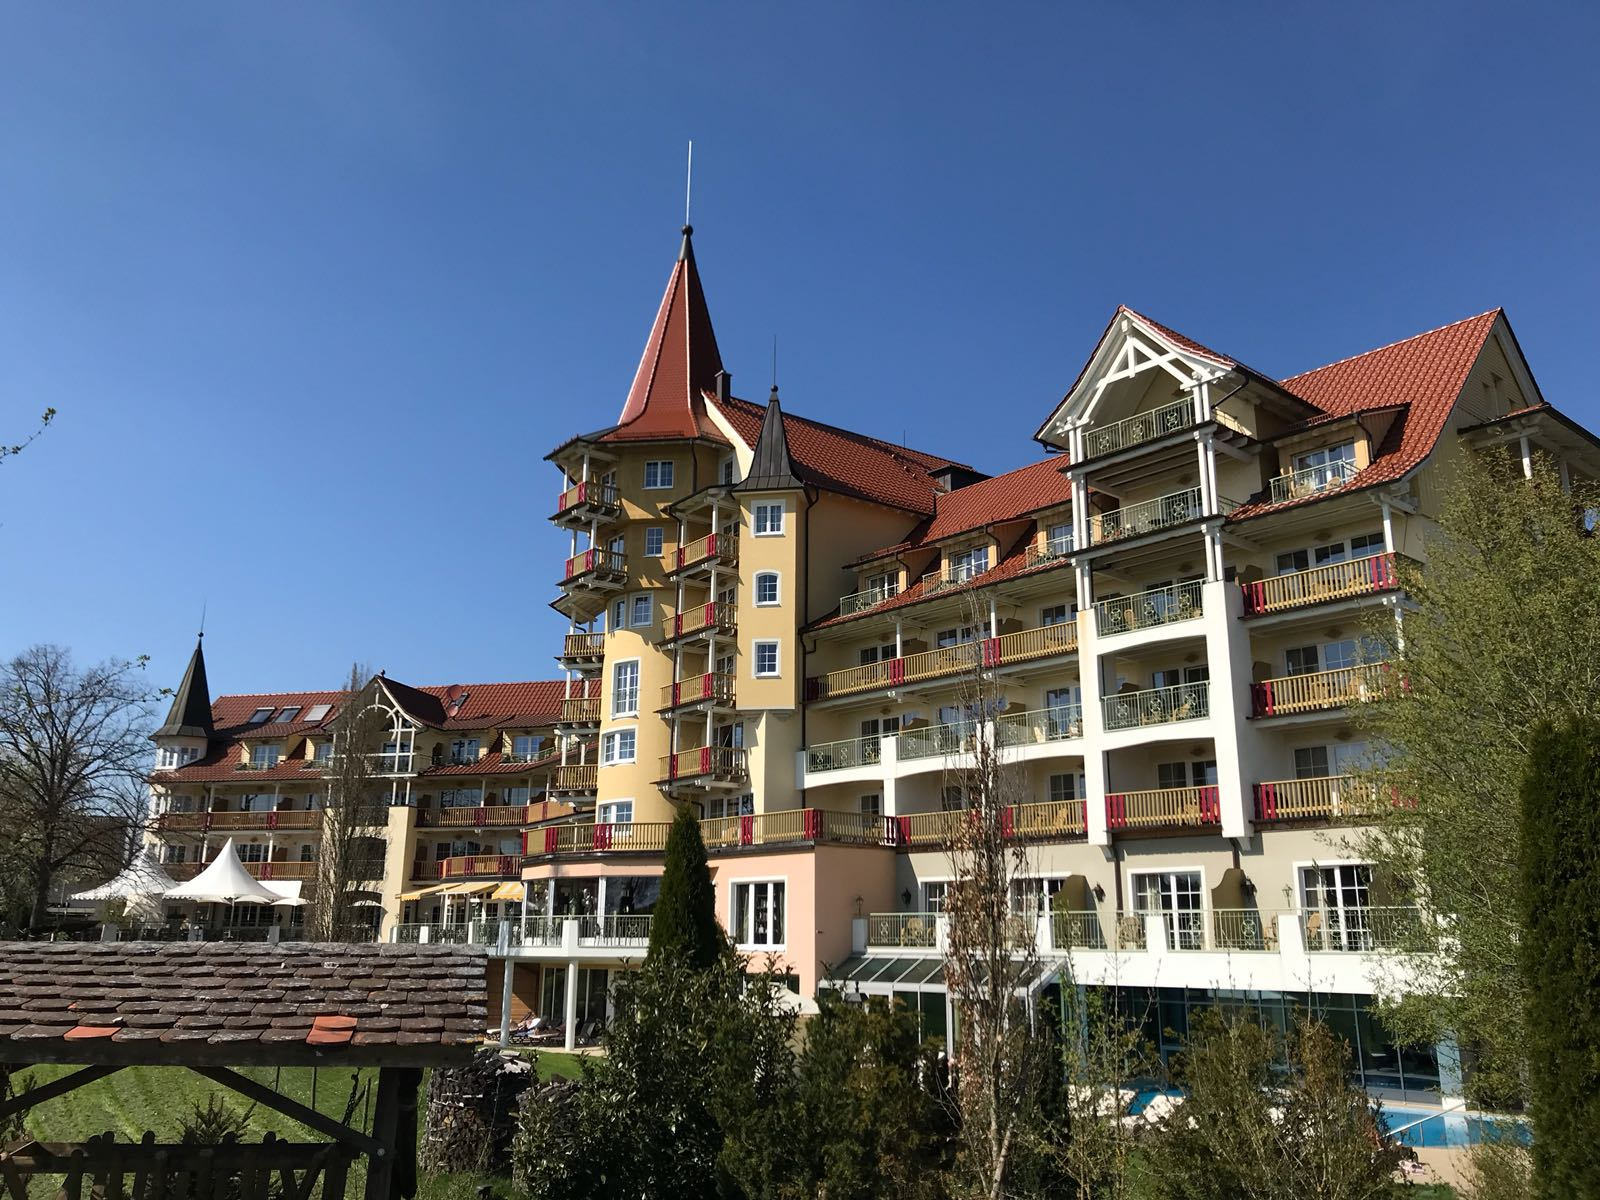 New Pilot Project in Luxury Hotels in Fichtenau-Neustadtlein - HydroPATH Again !